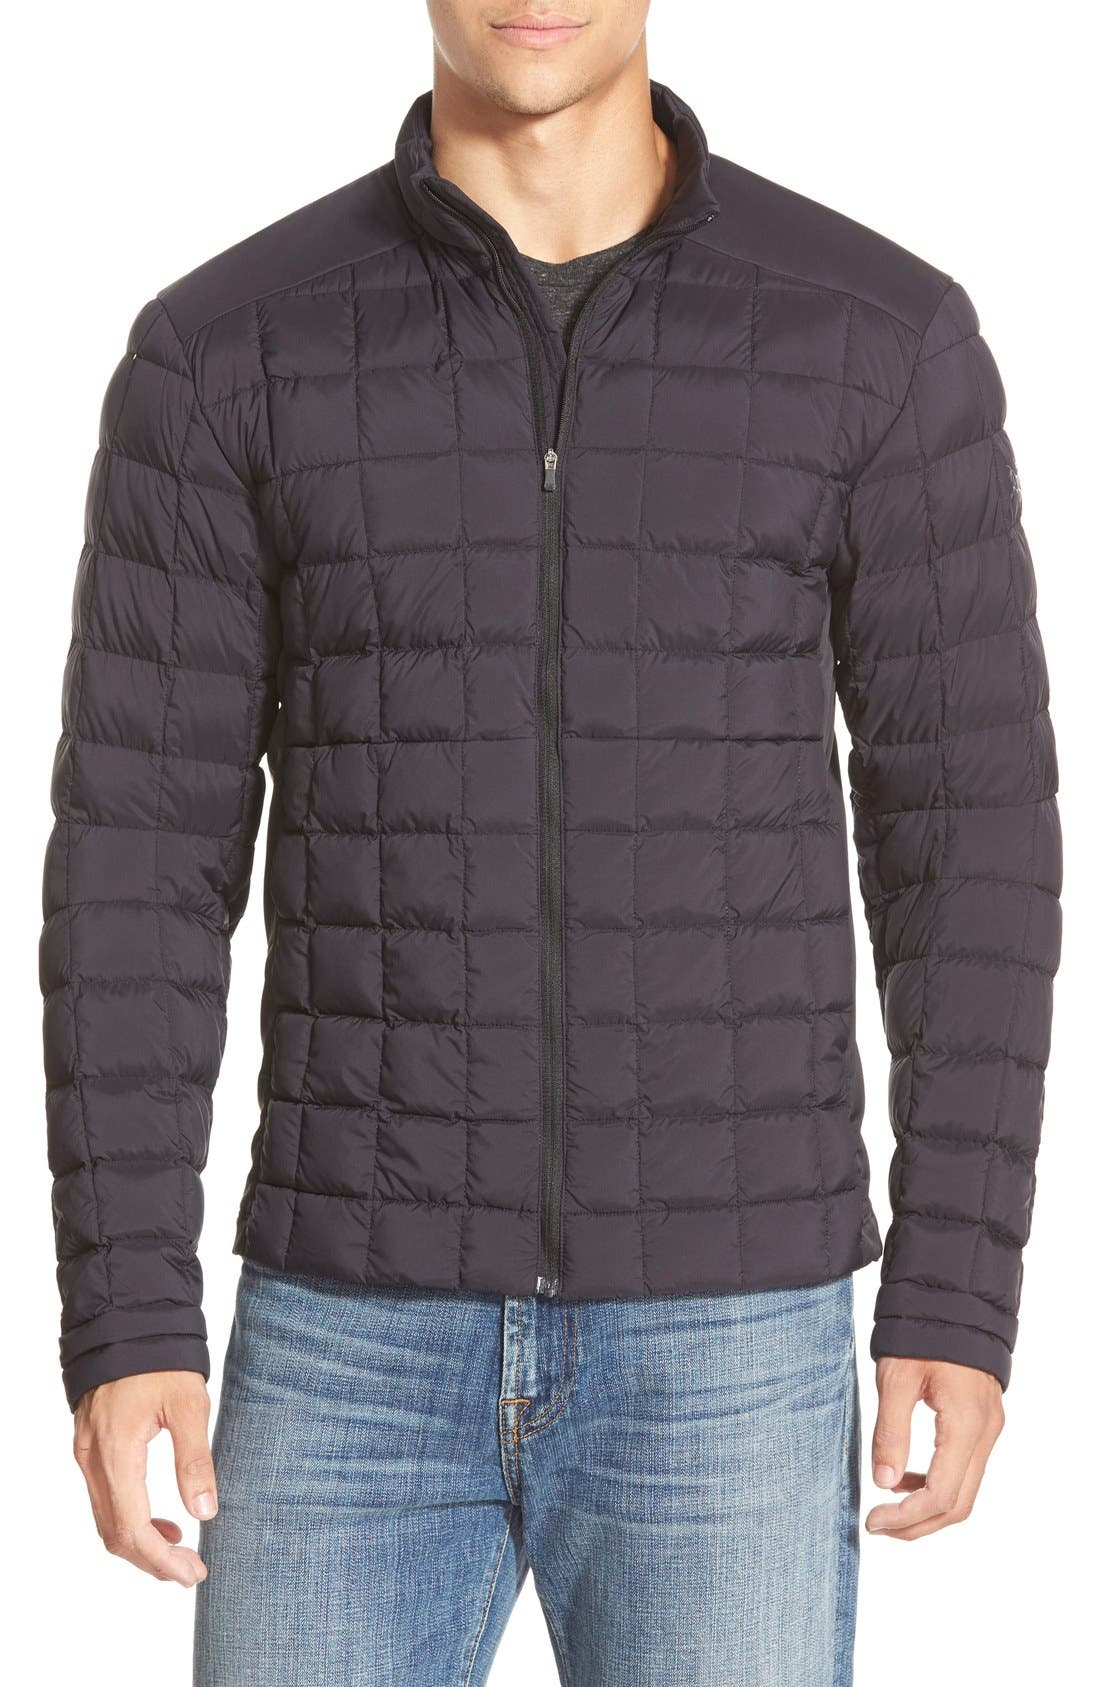 Arc'teryx 'Rico' Athletic Fit Quilted Water Resistant Shirt Jacket